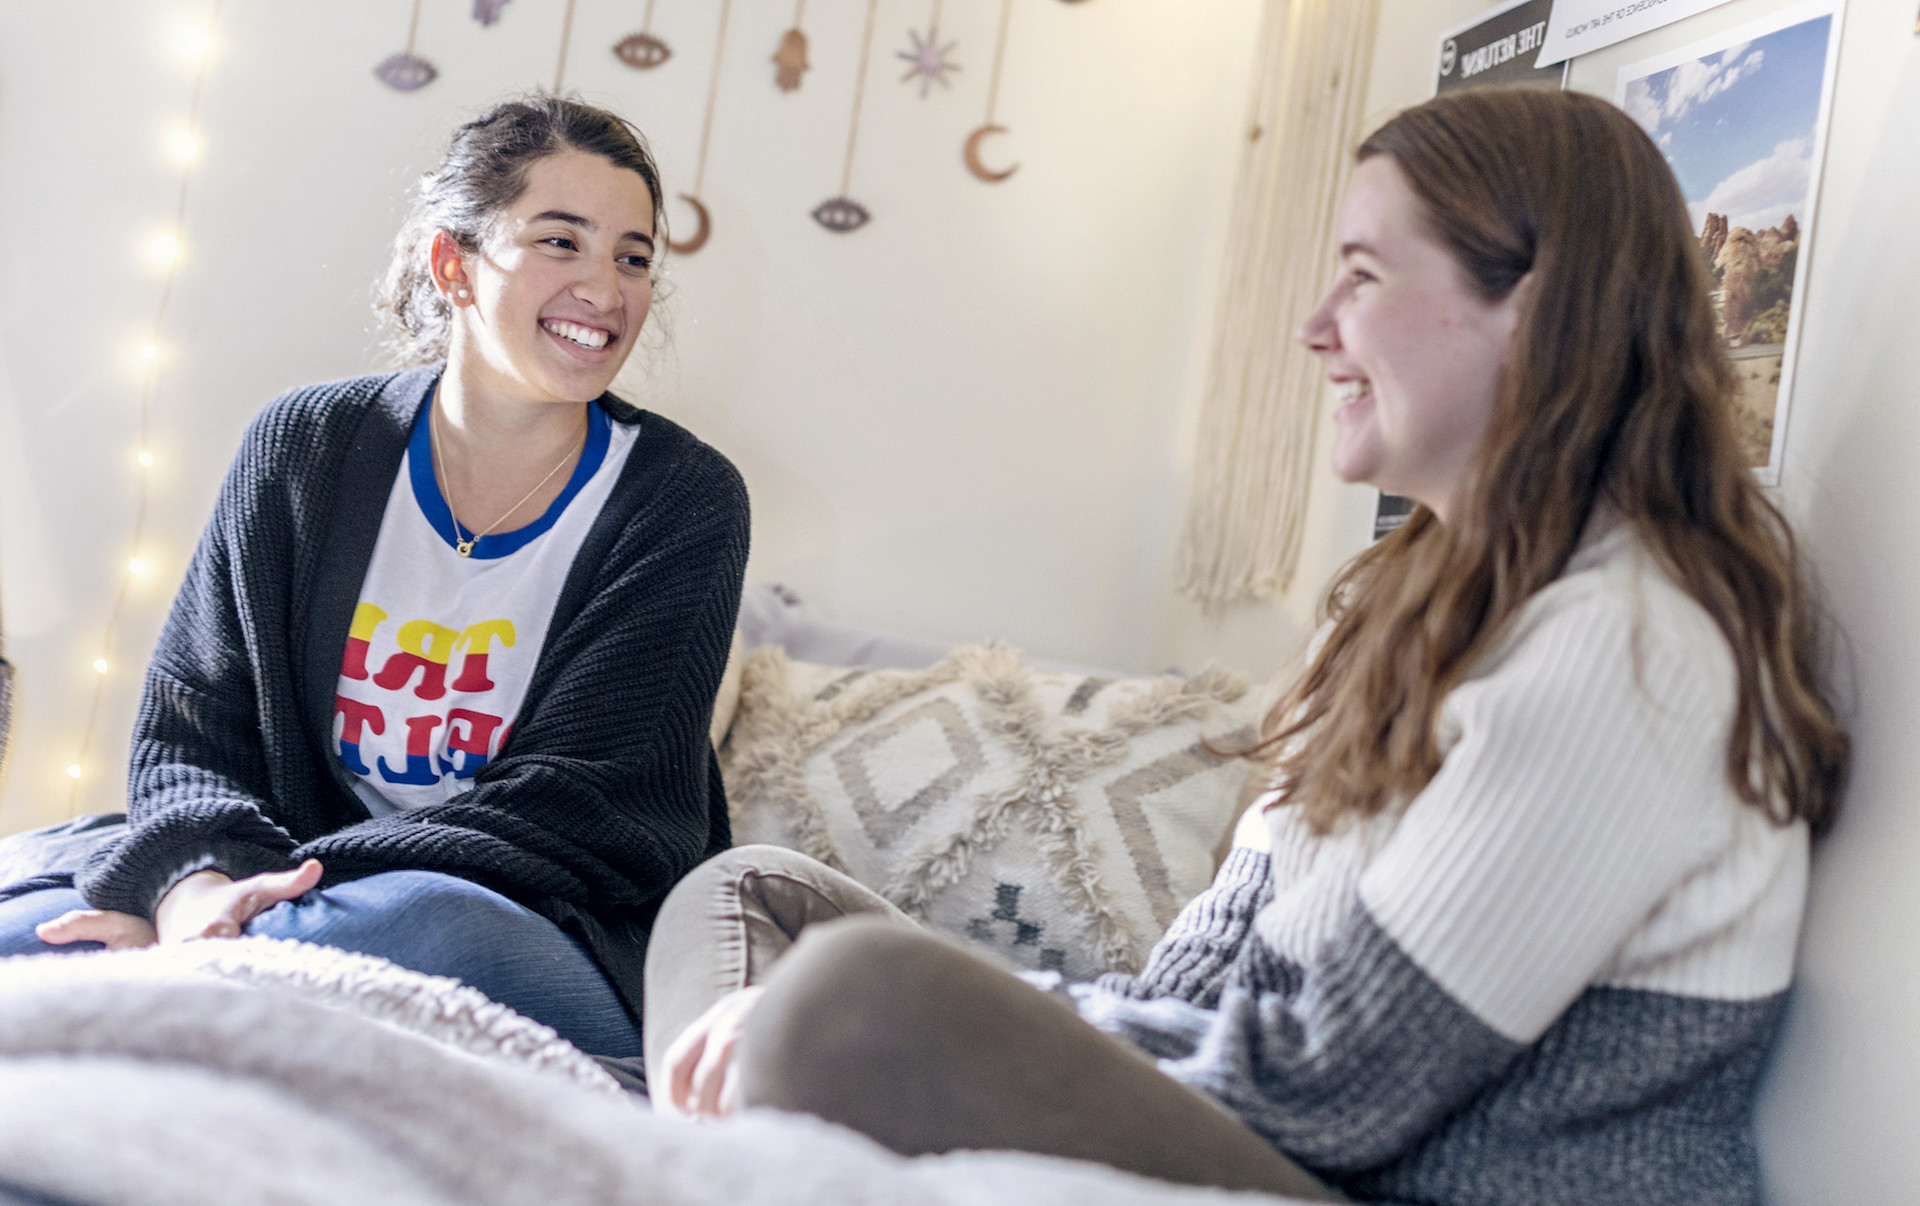 Two women sitting on a dorm room bed, talking and laughing. The white walls behind them are decorated with fairy lights, a poster of mesas in the southwestern US, and a mobile hanging with stars, moons, and all-seeing eyes.